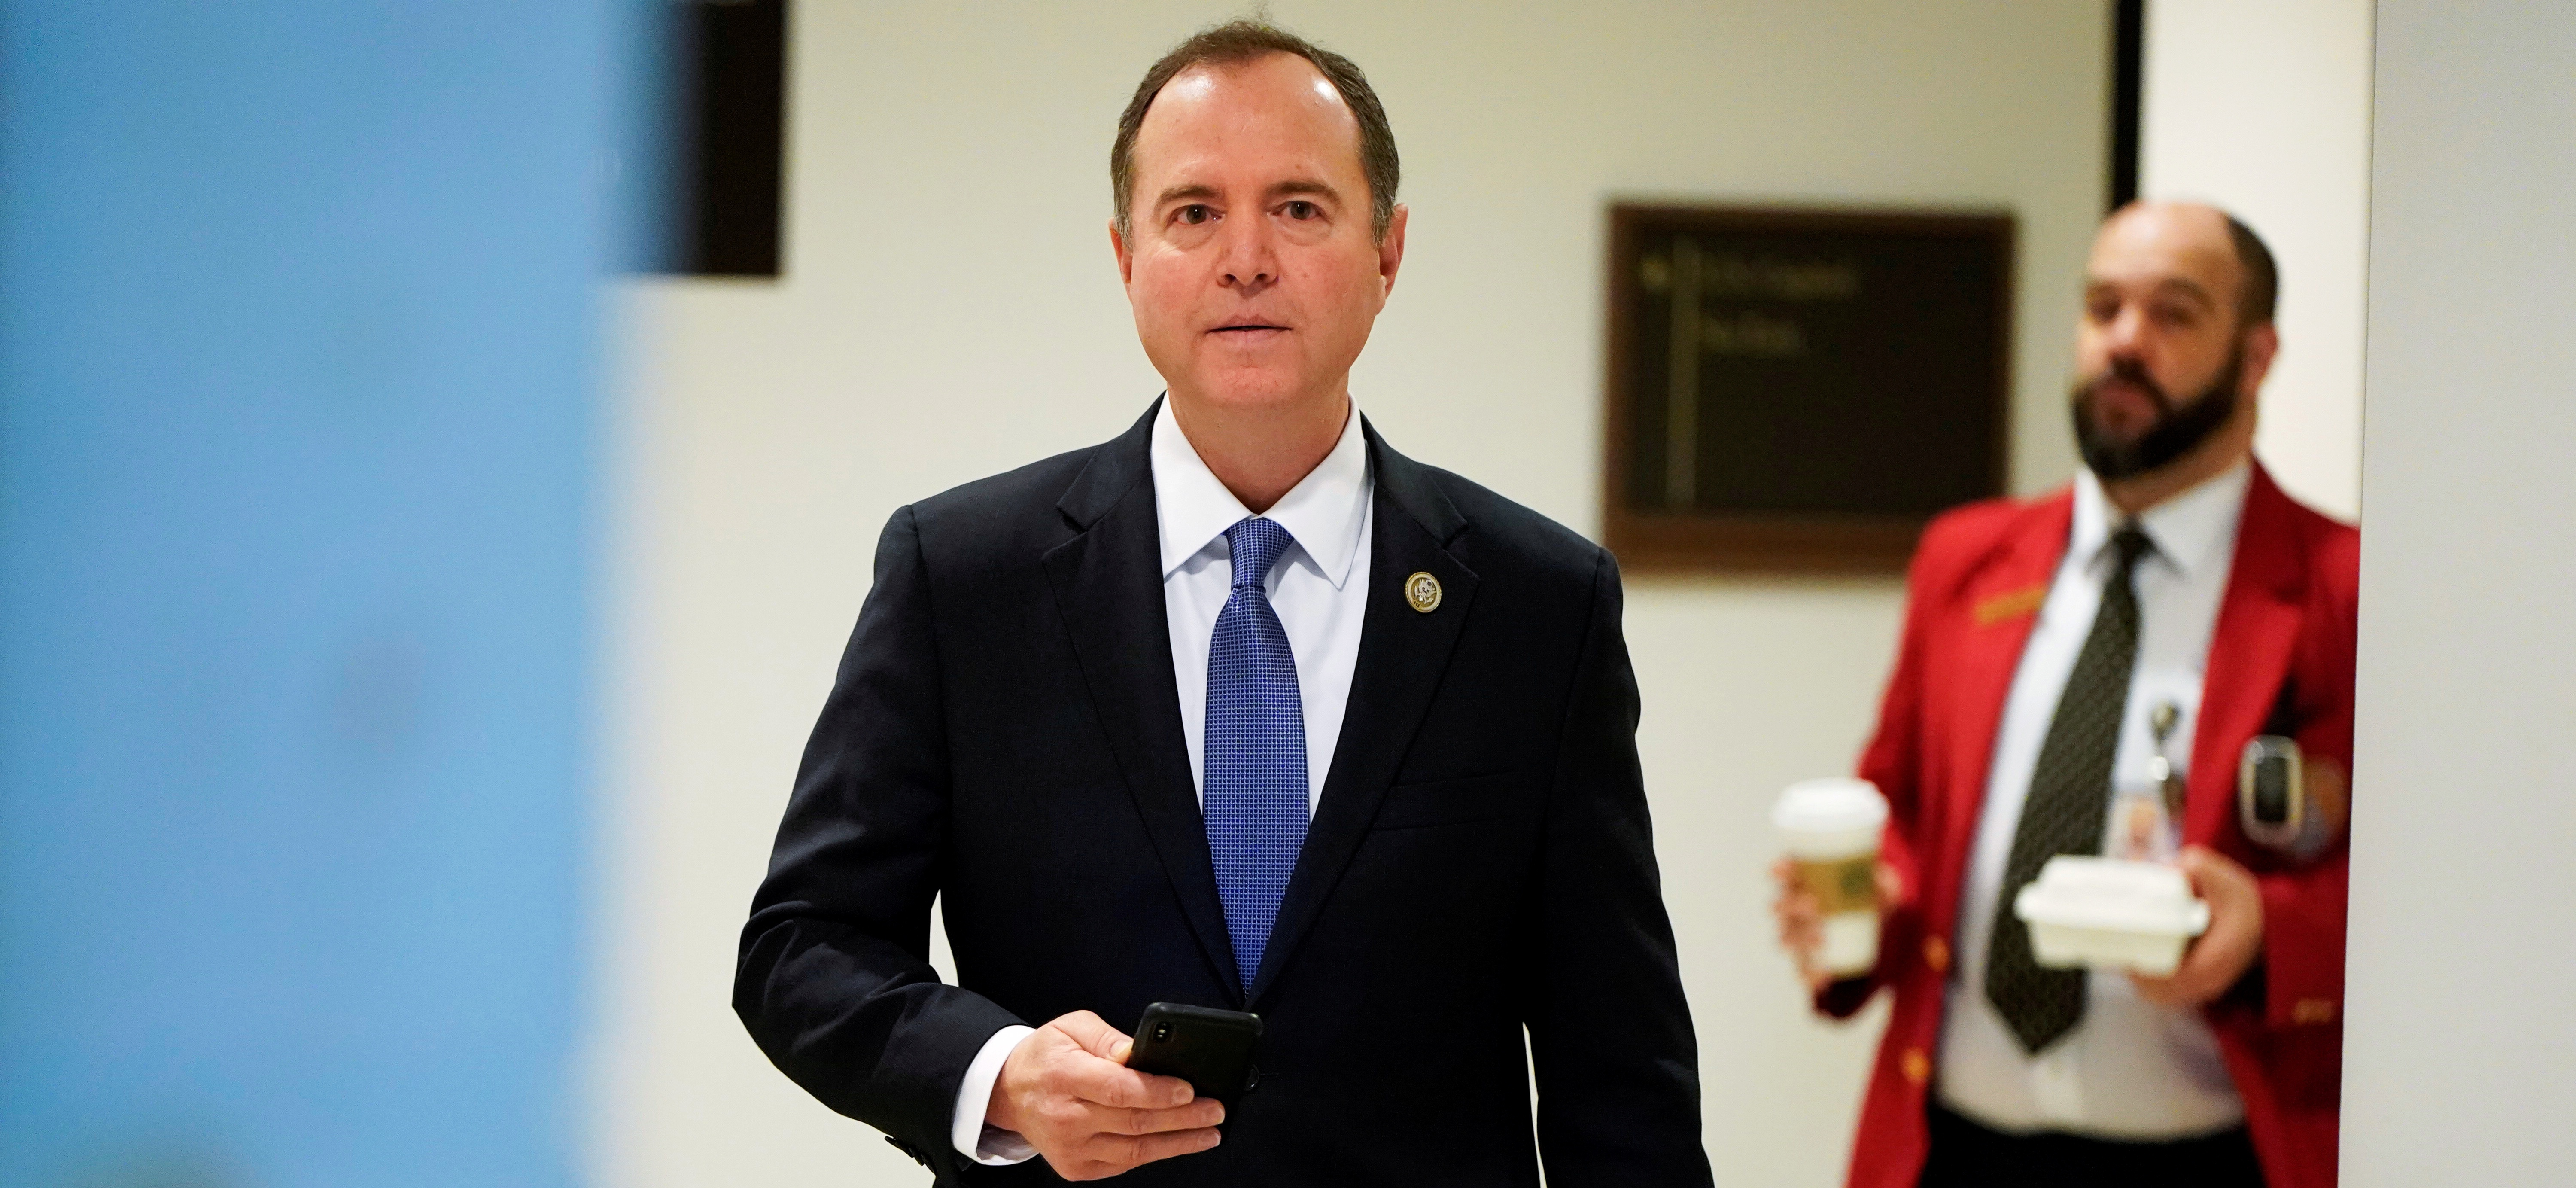 'Time Is Running Out': Schiff Hopes To Decide On Mueller Subpoena Soon | The Daily Caller